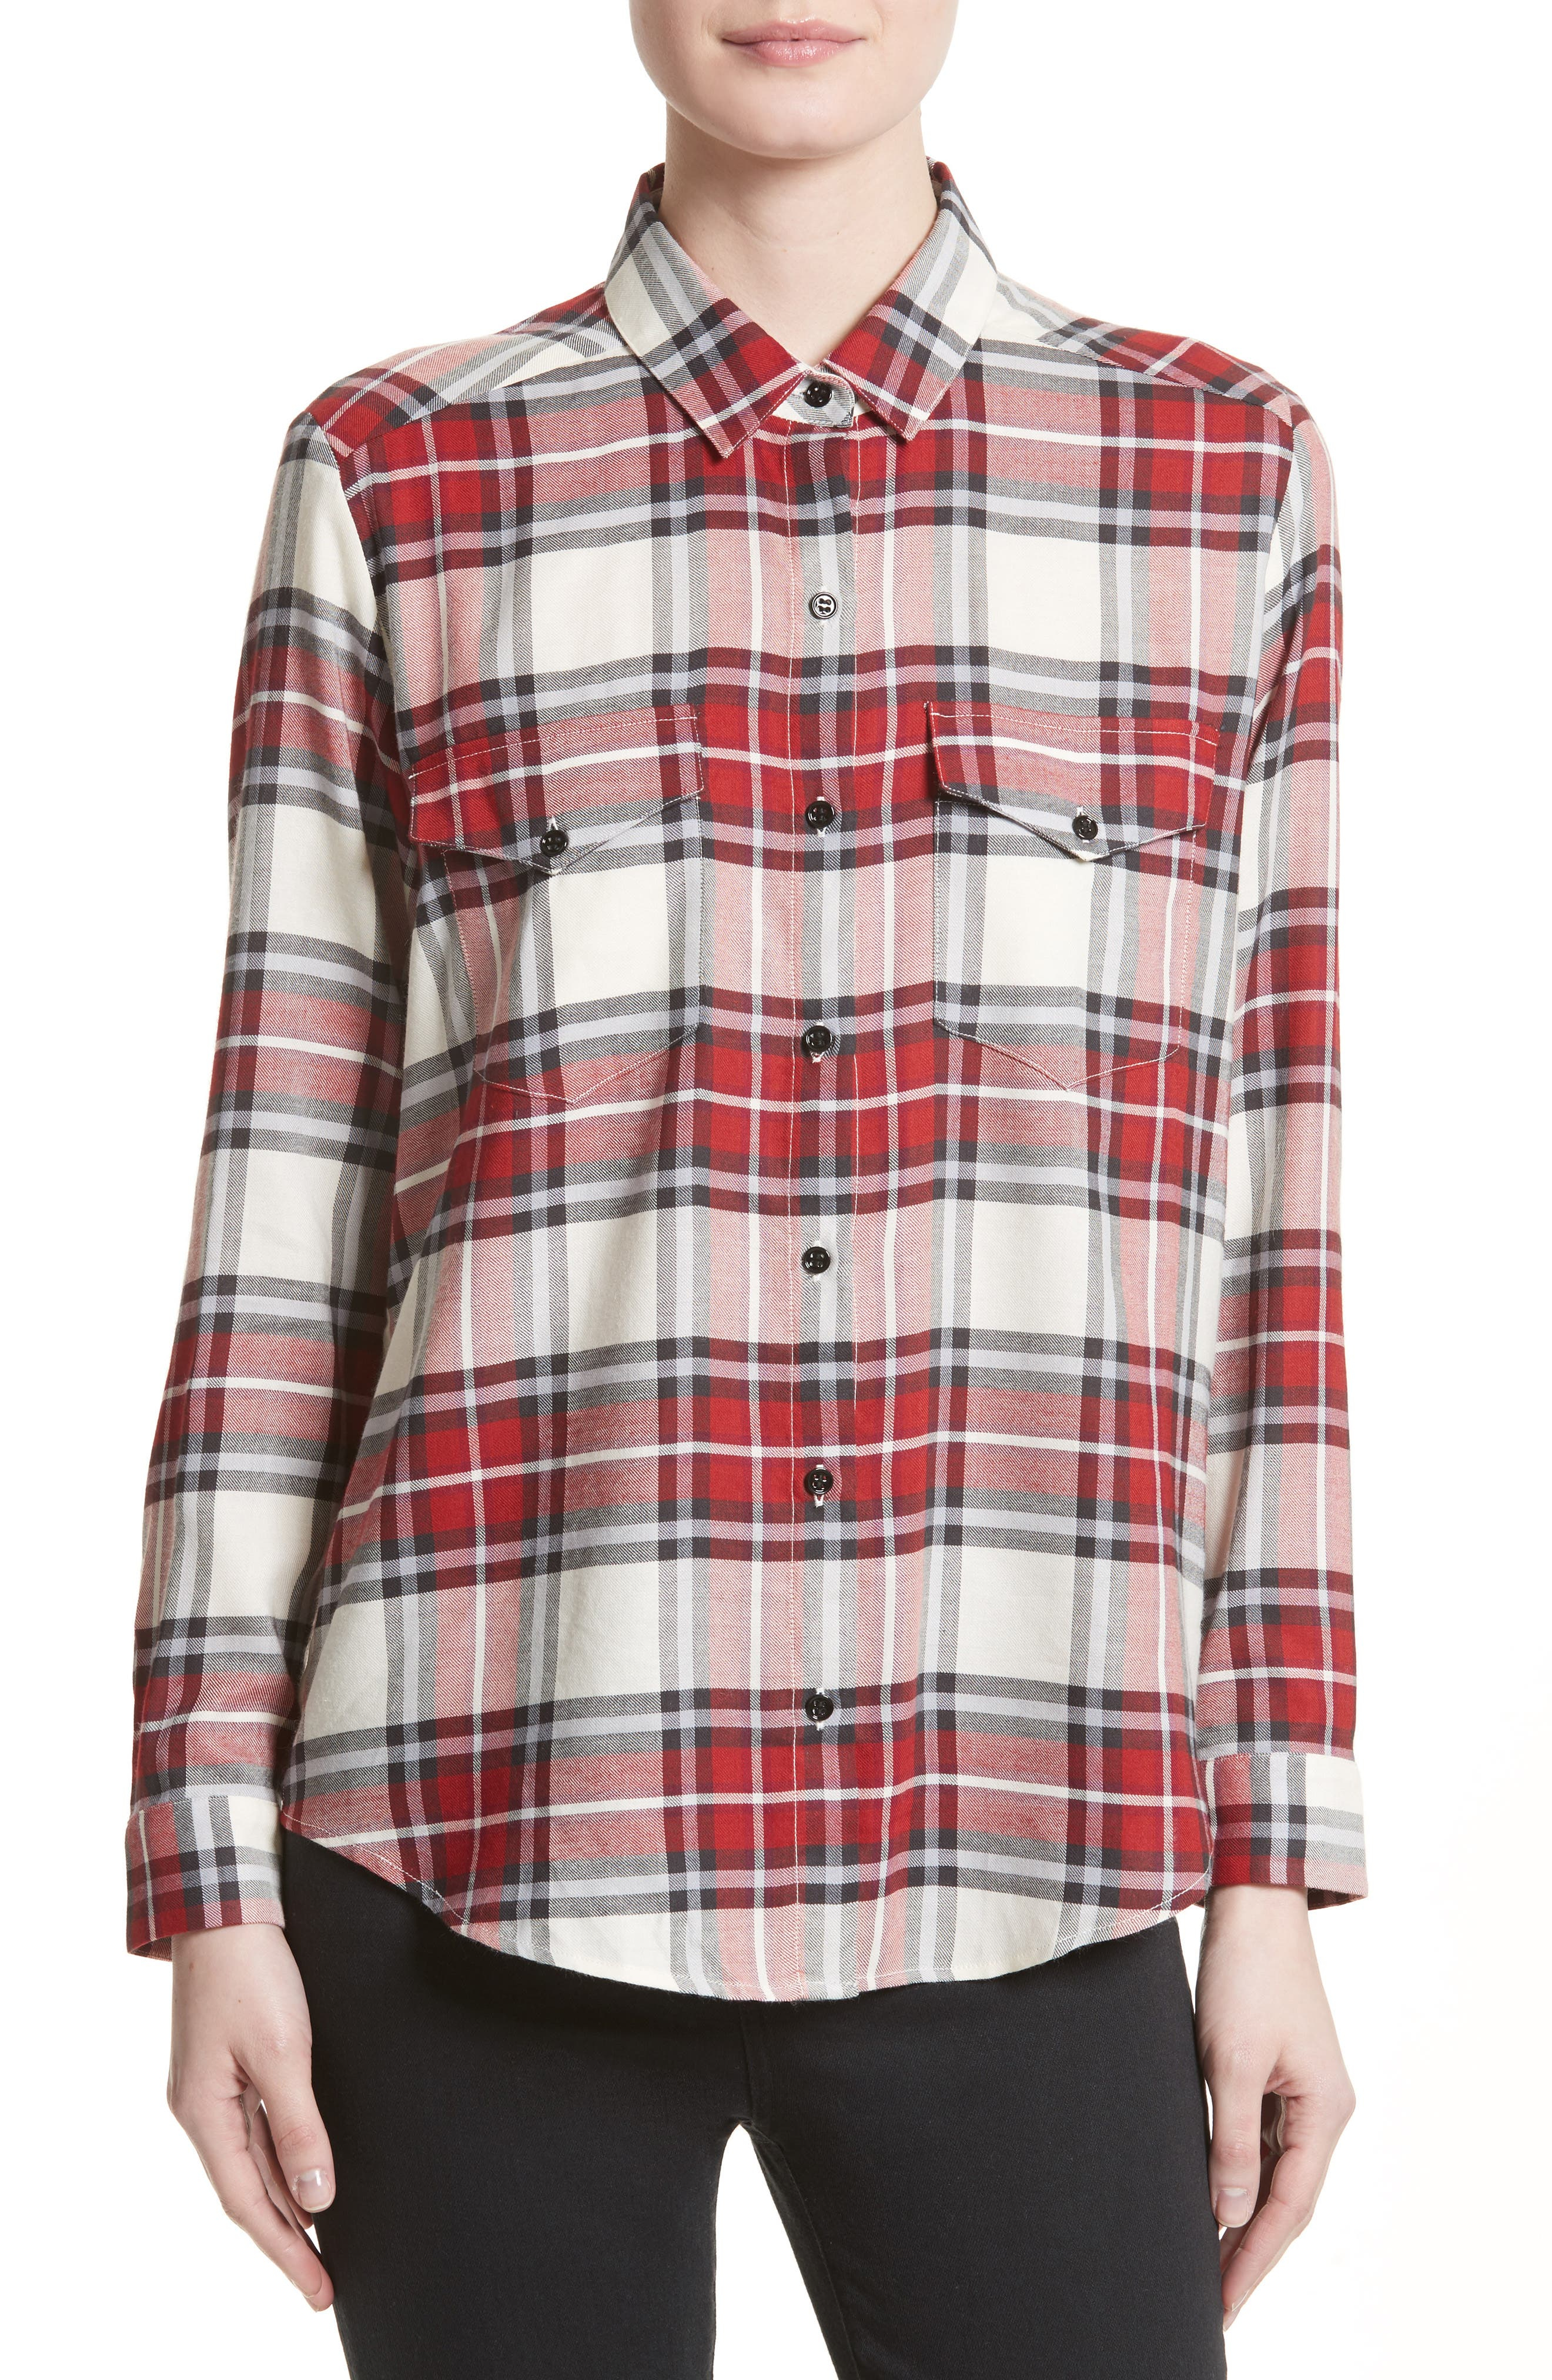 Main Image - The Kooples Plaid Flannel Shirt